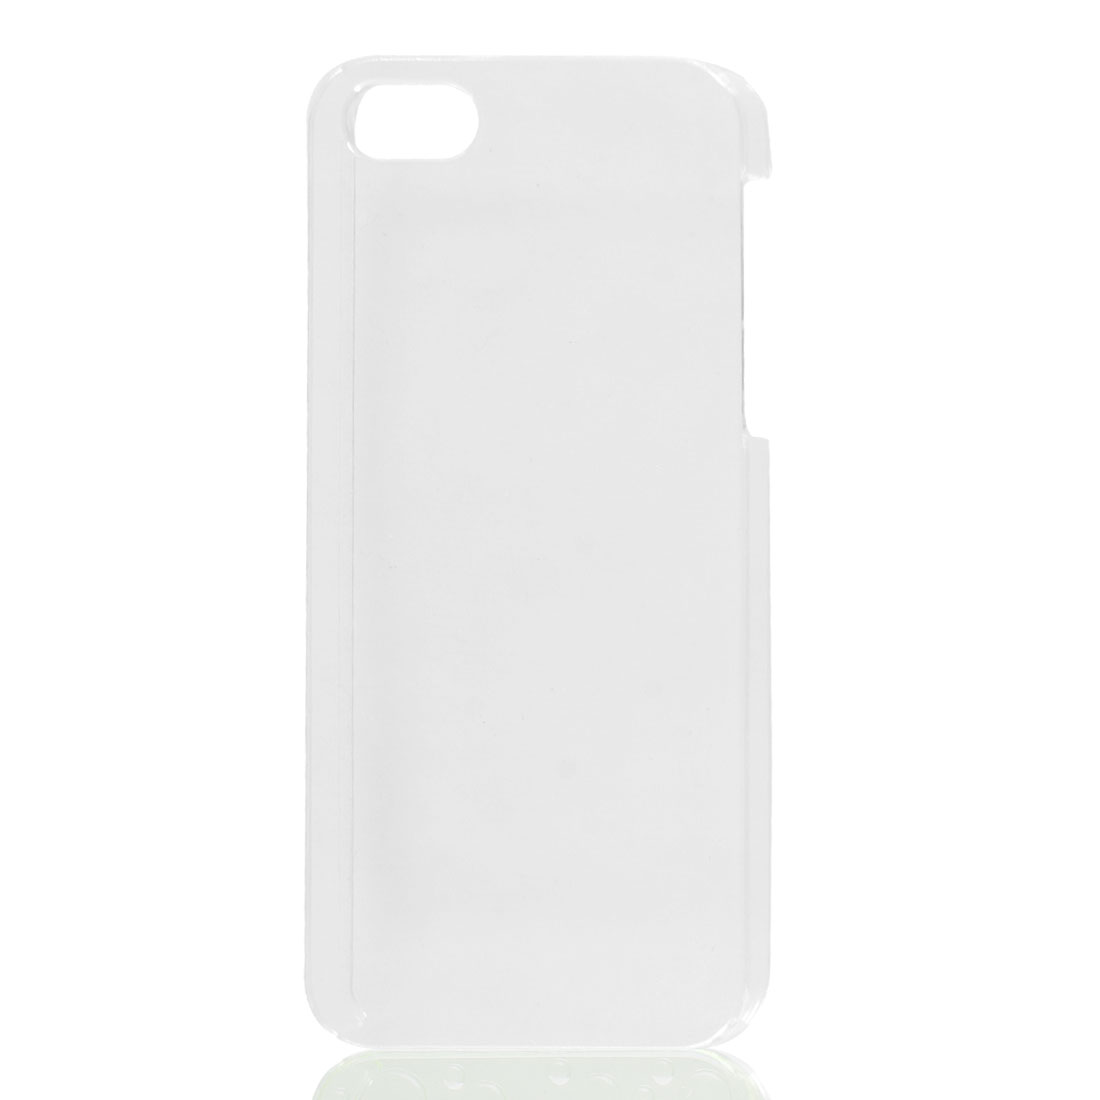 Plastic Hard Back Case Protective Cover Clear for iPhone 5 5G 5th Gen